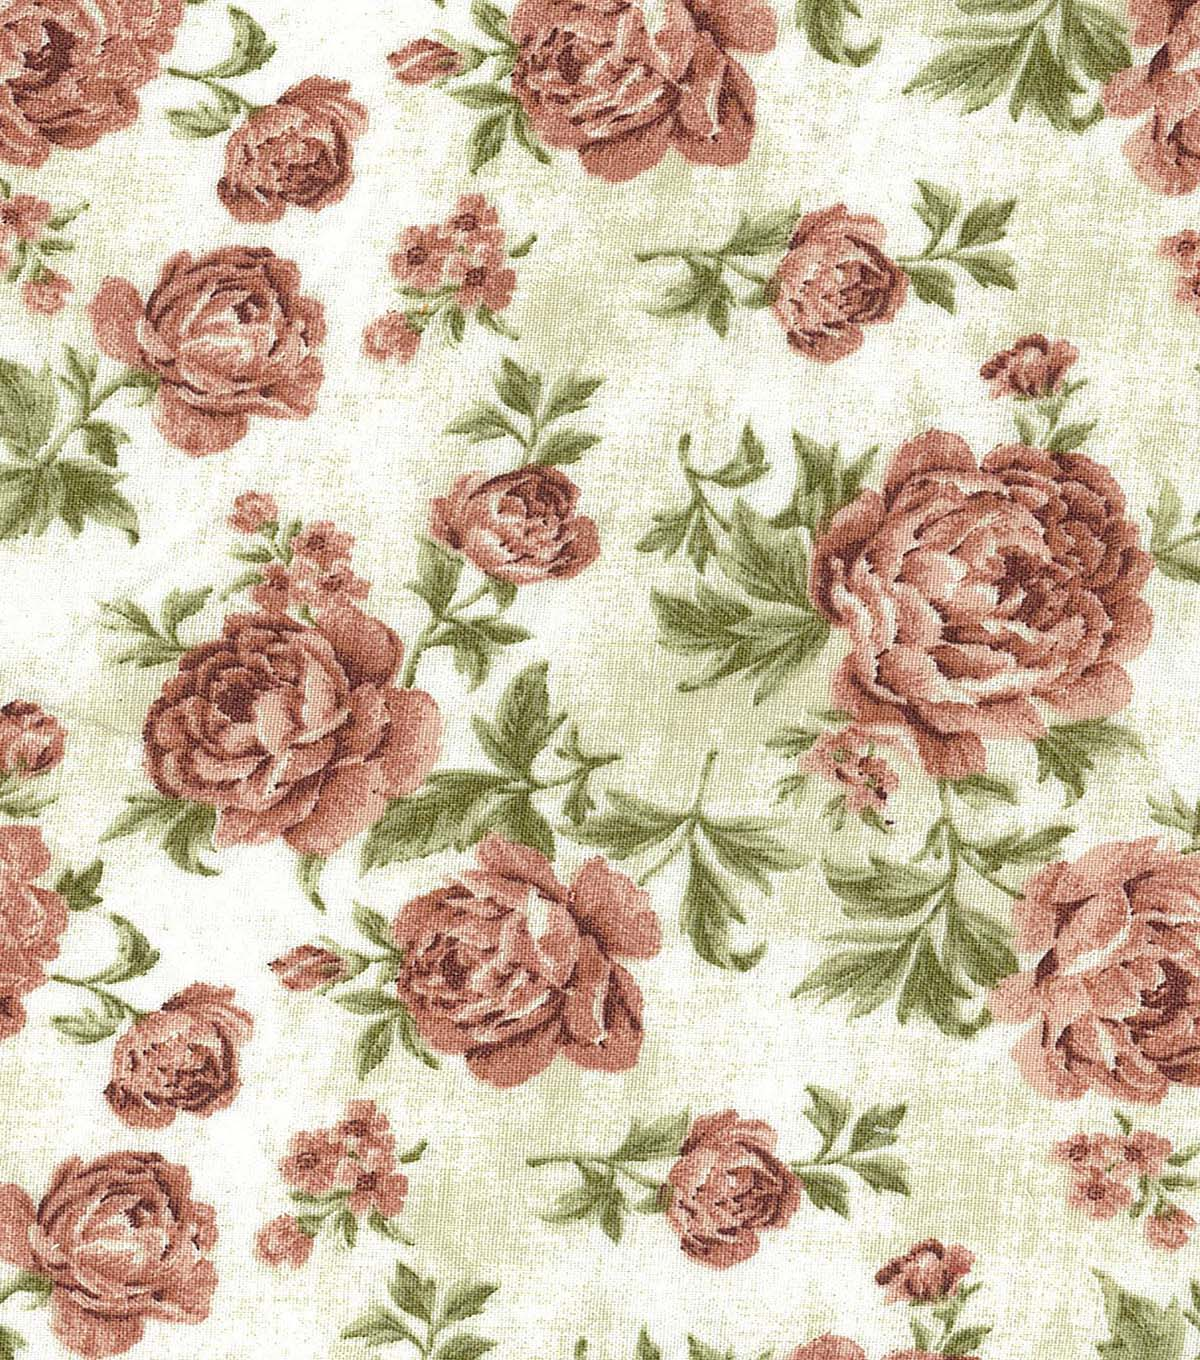 Premium Wide Cotton Fabric 108\u0022-Large Floral Orange